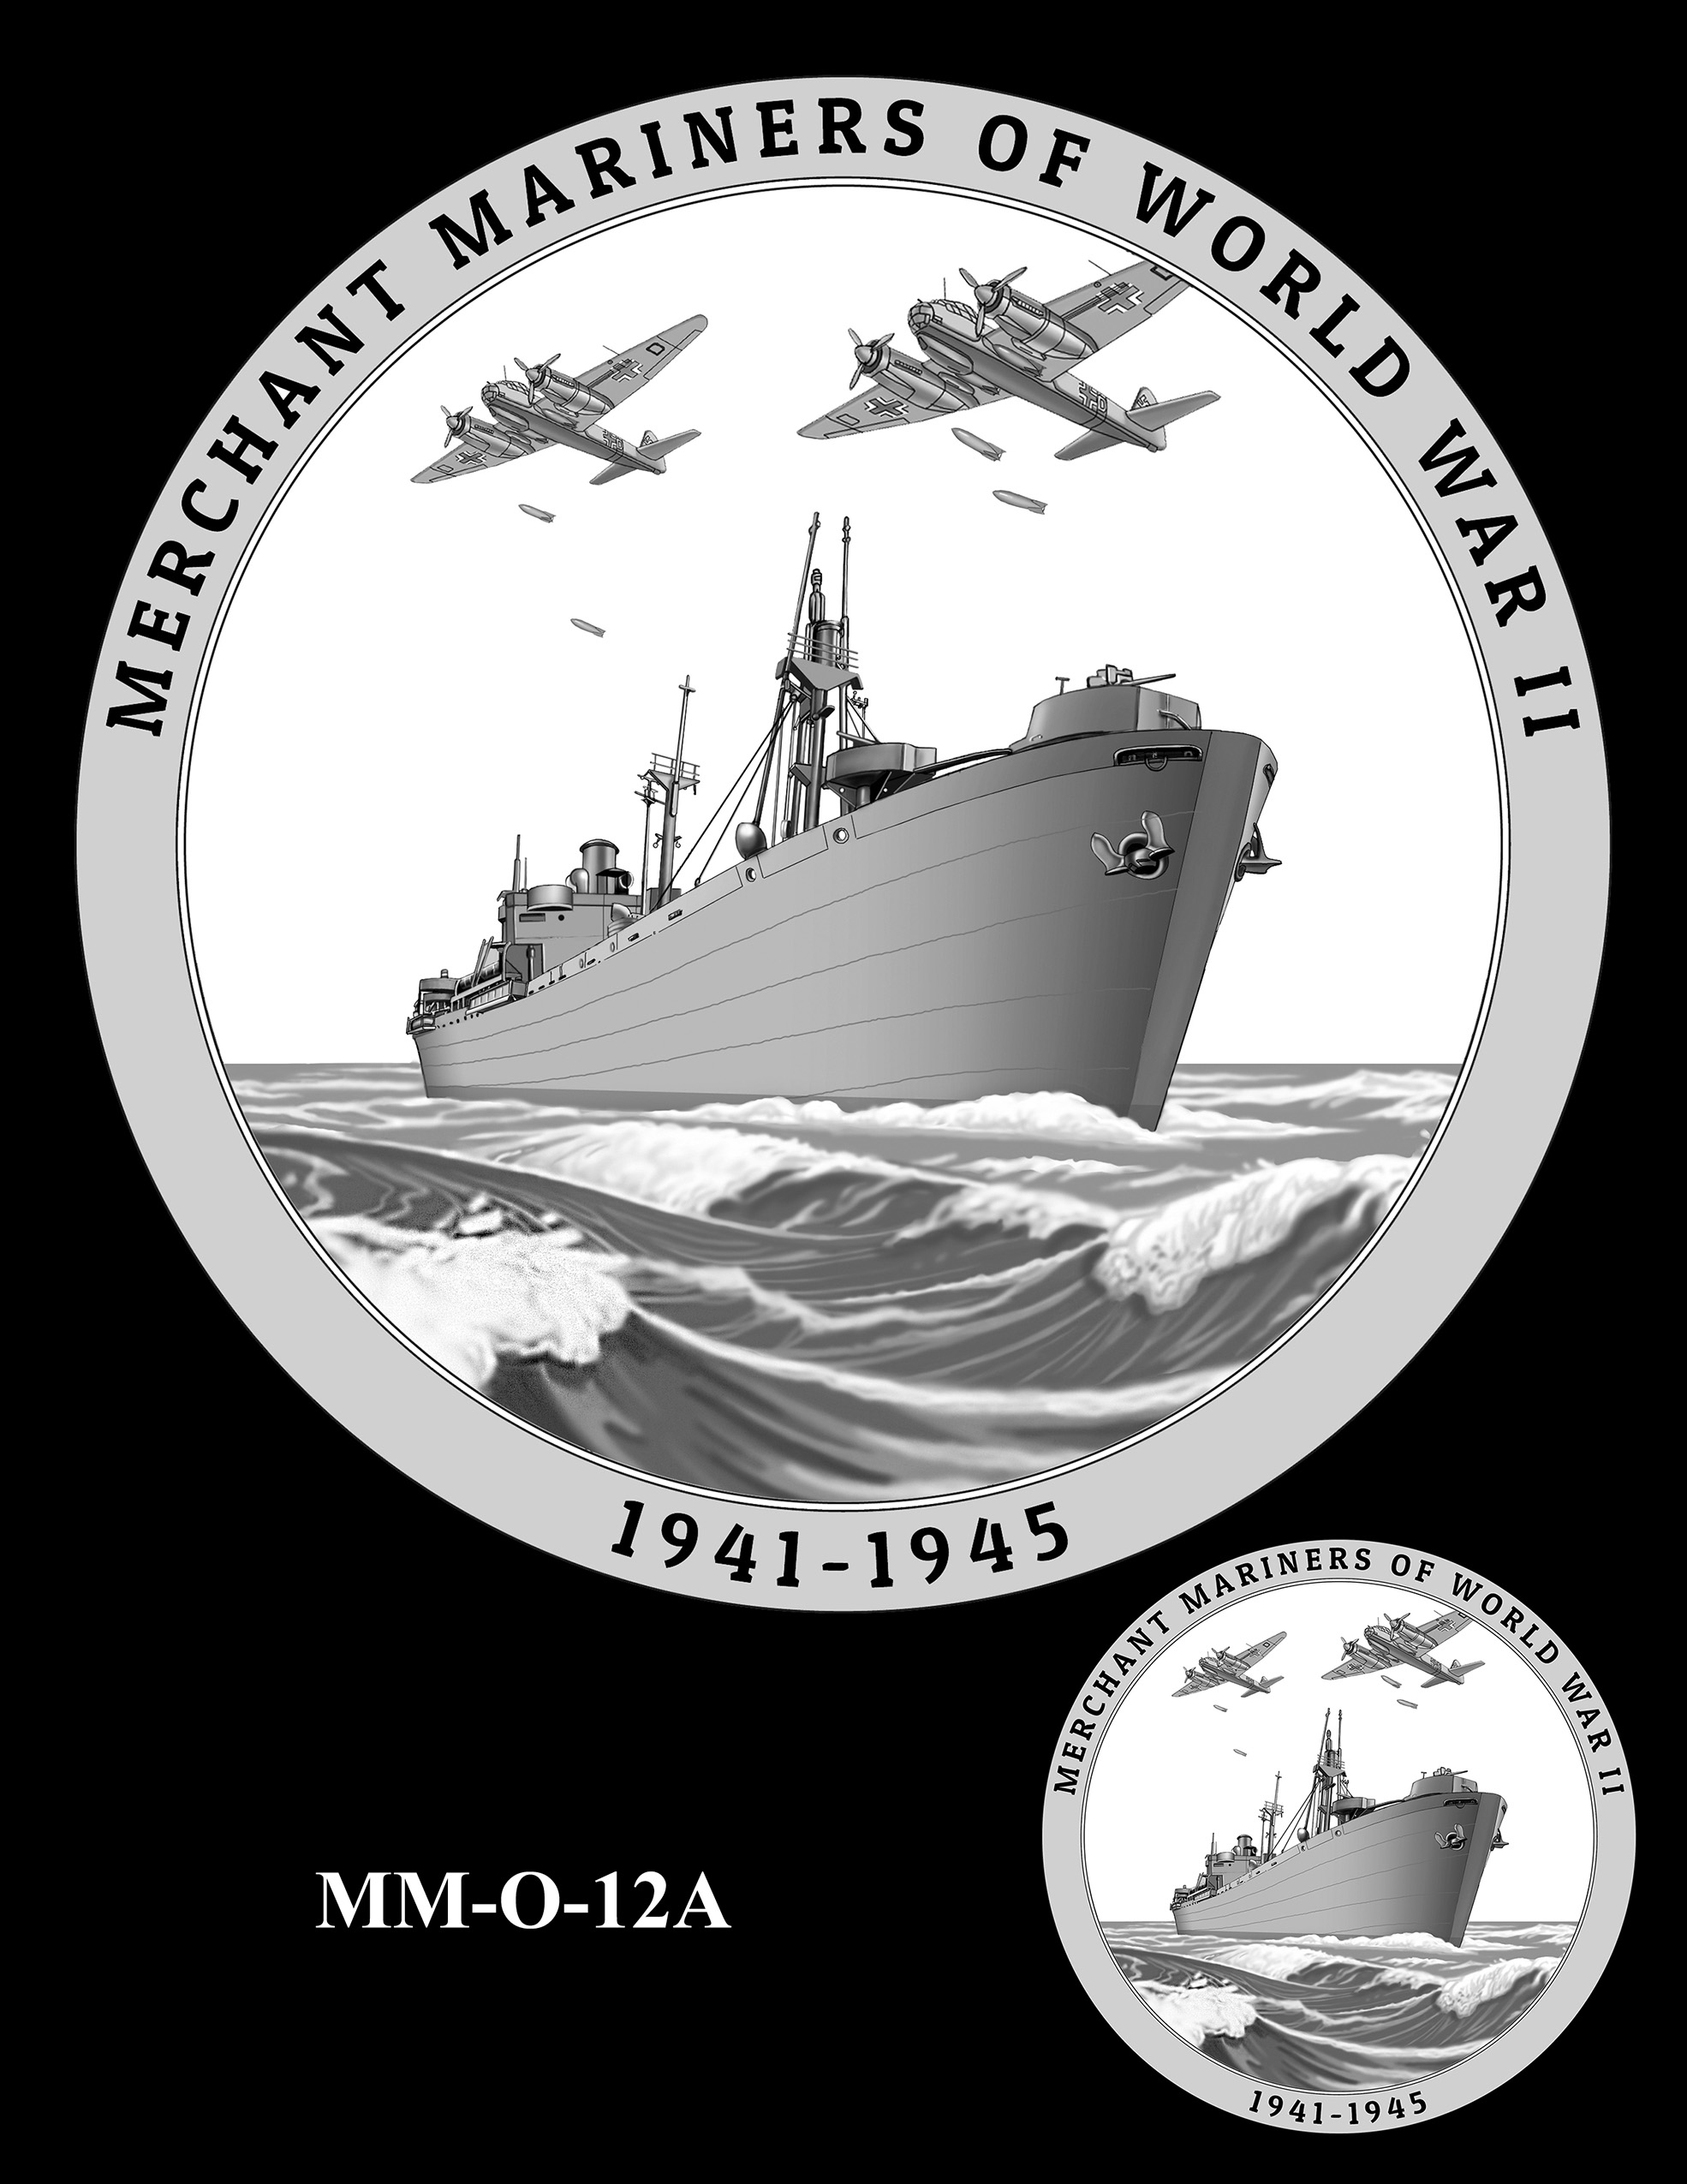 MM-O-12A -- Merchant Mariners of World War II Congressional Gold Medal